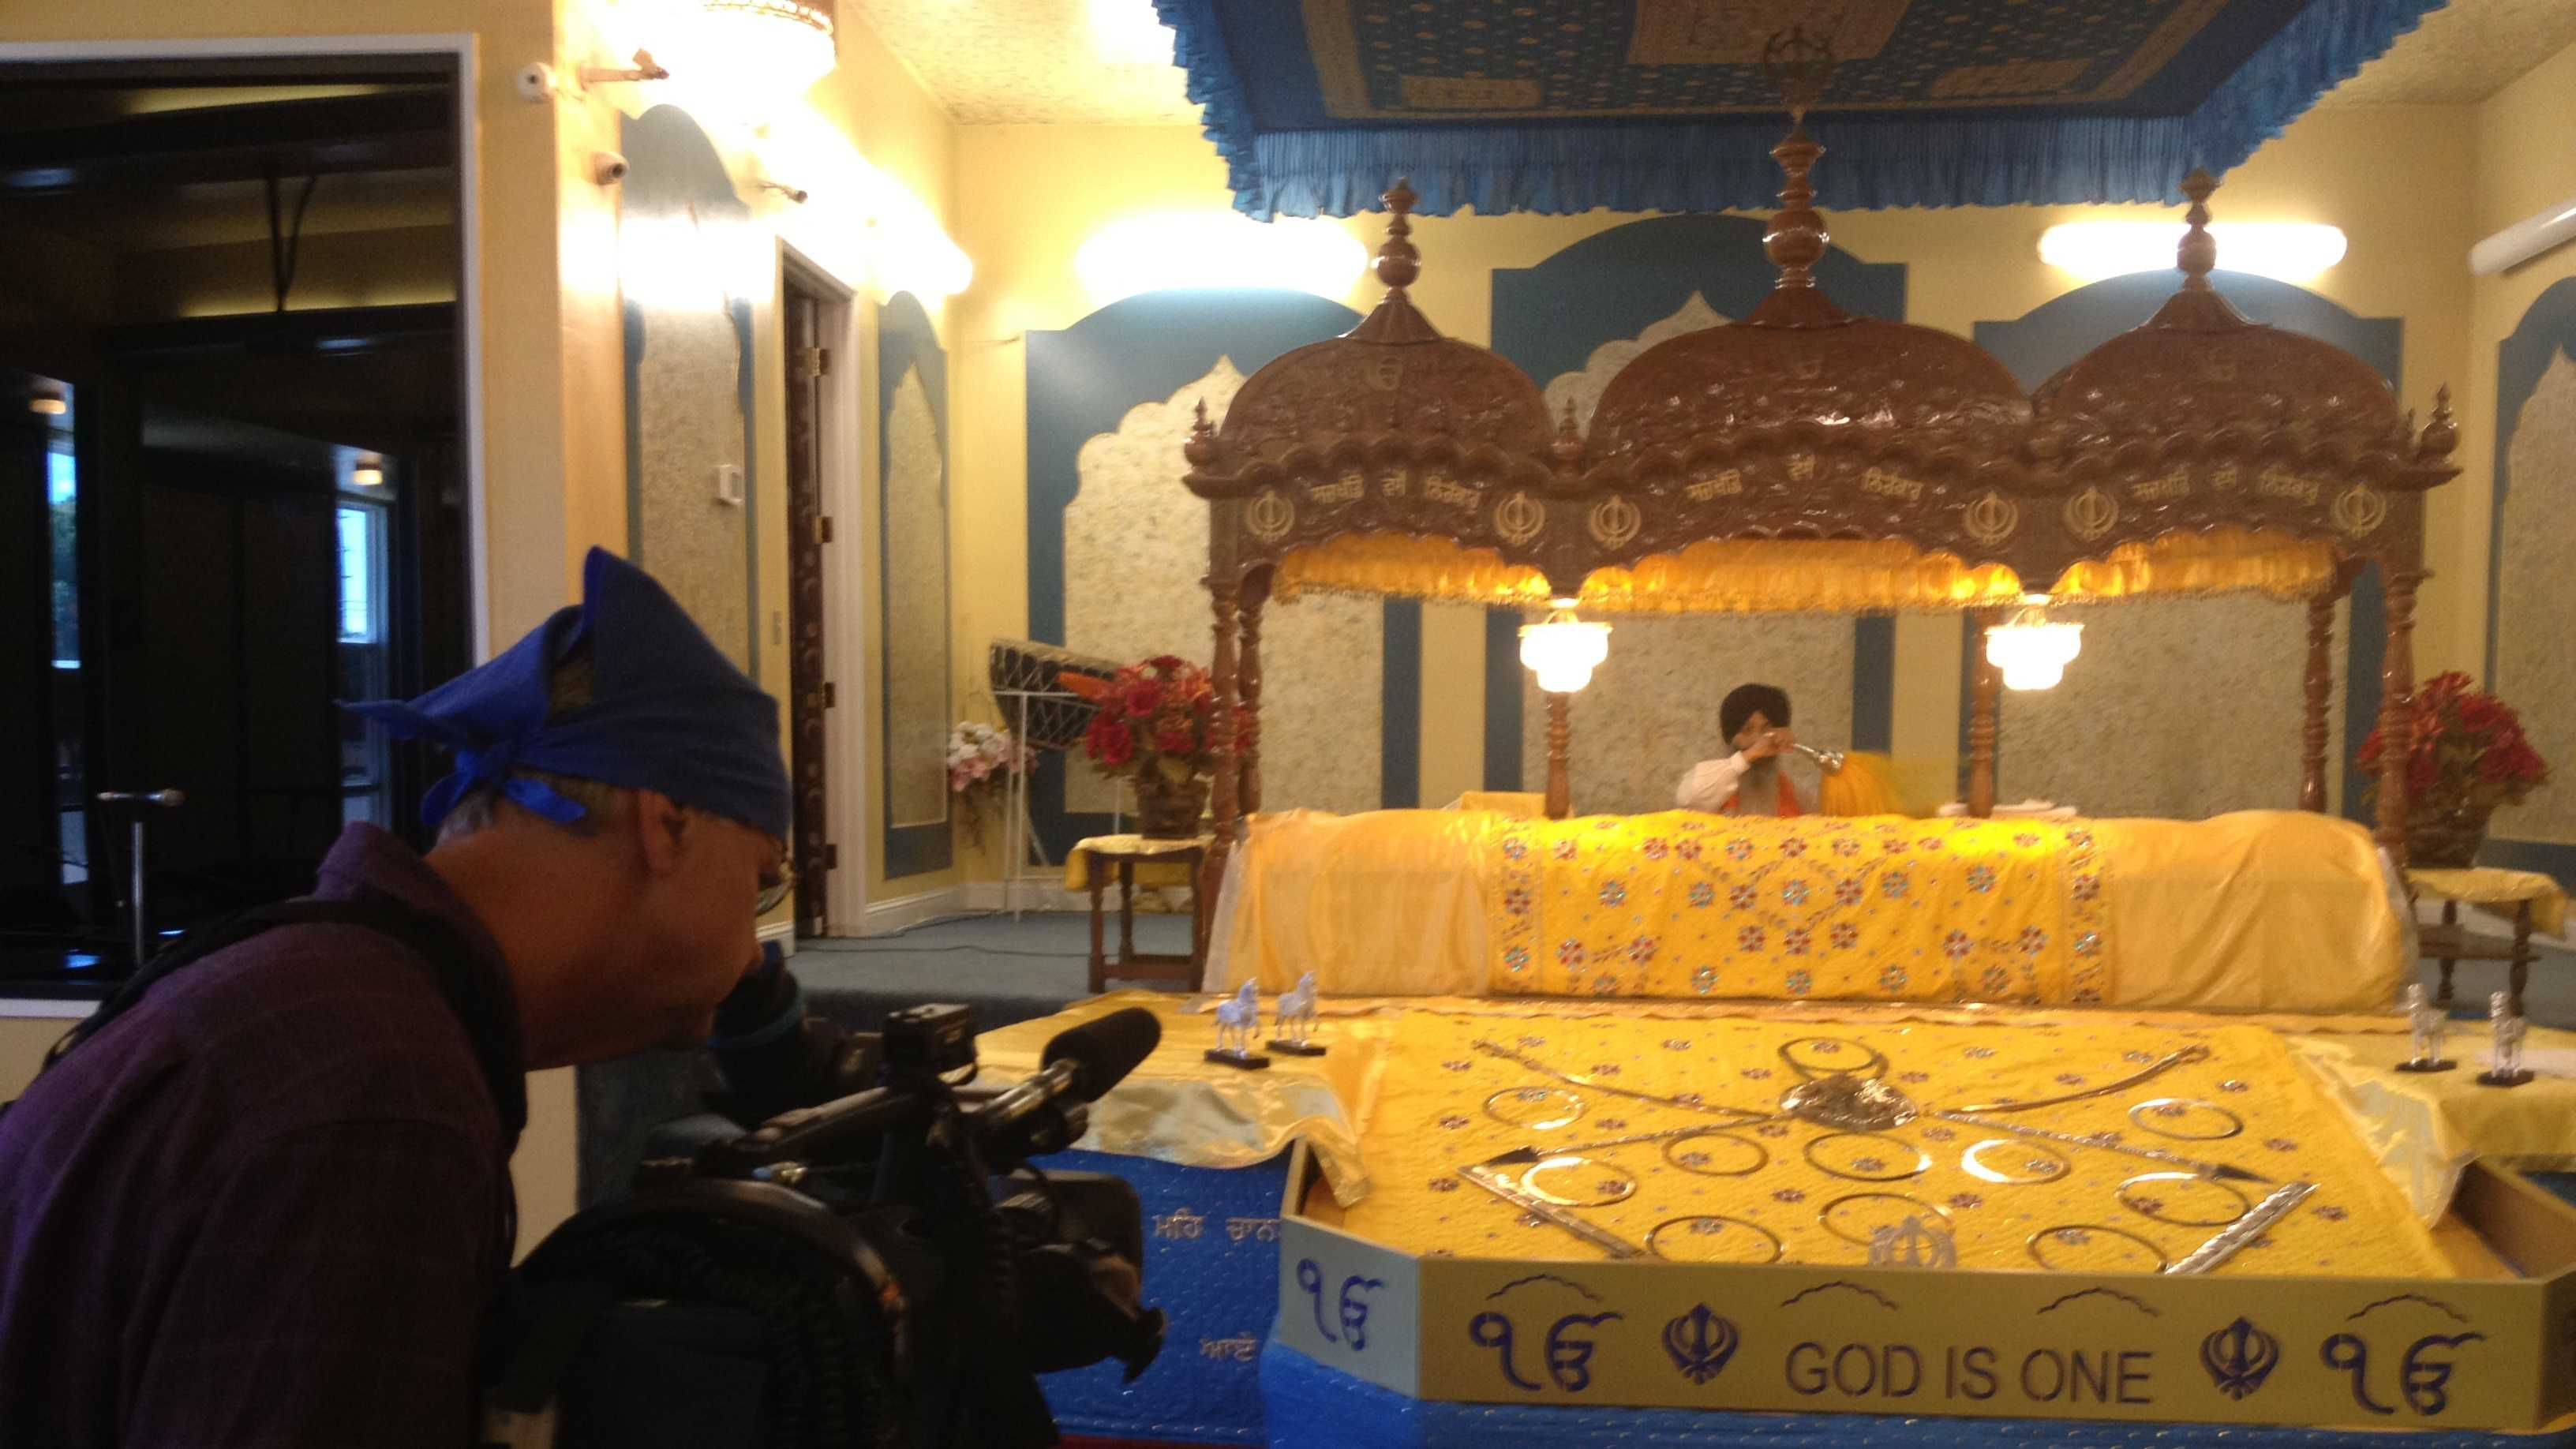 KCRA photographer John Breedlove shoots prayers and the altar inside the Yuba City Sikh temple